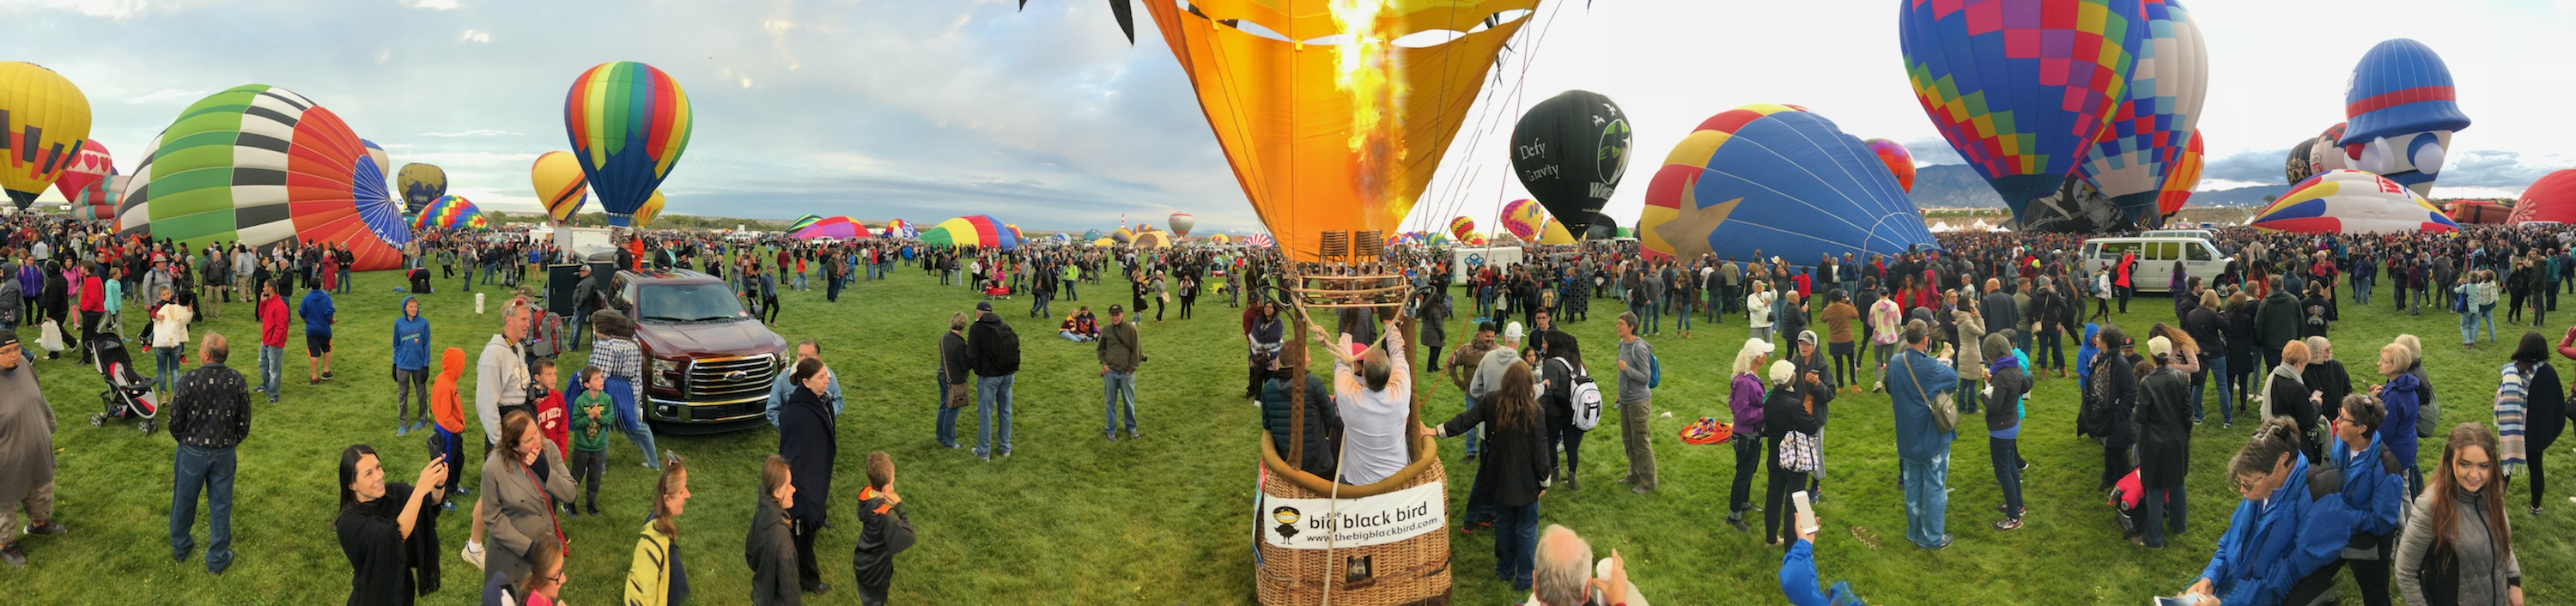 Balloon Fiesta 2018